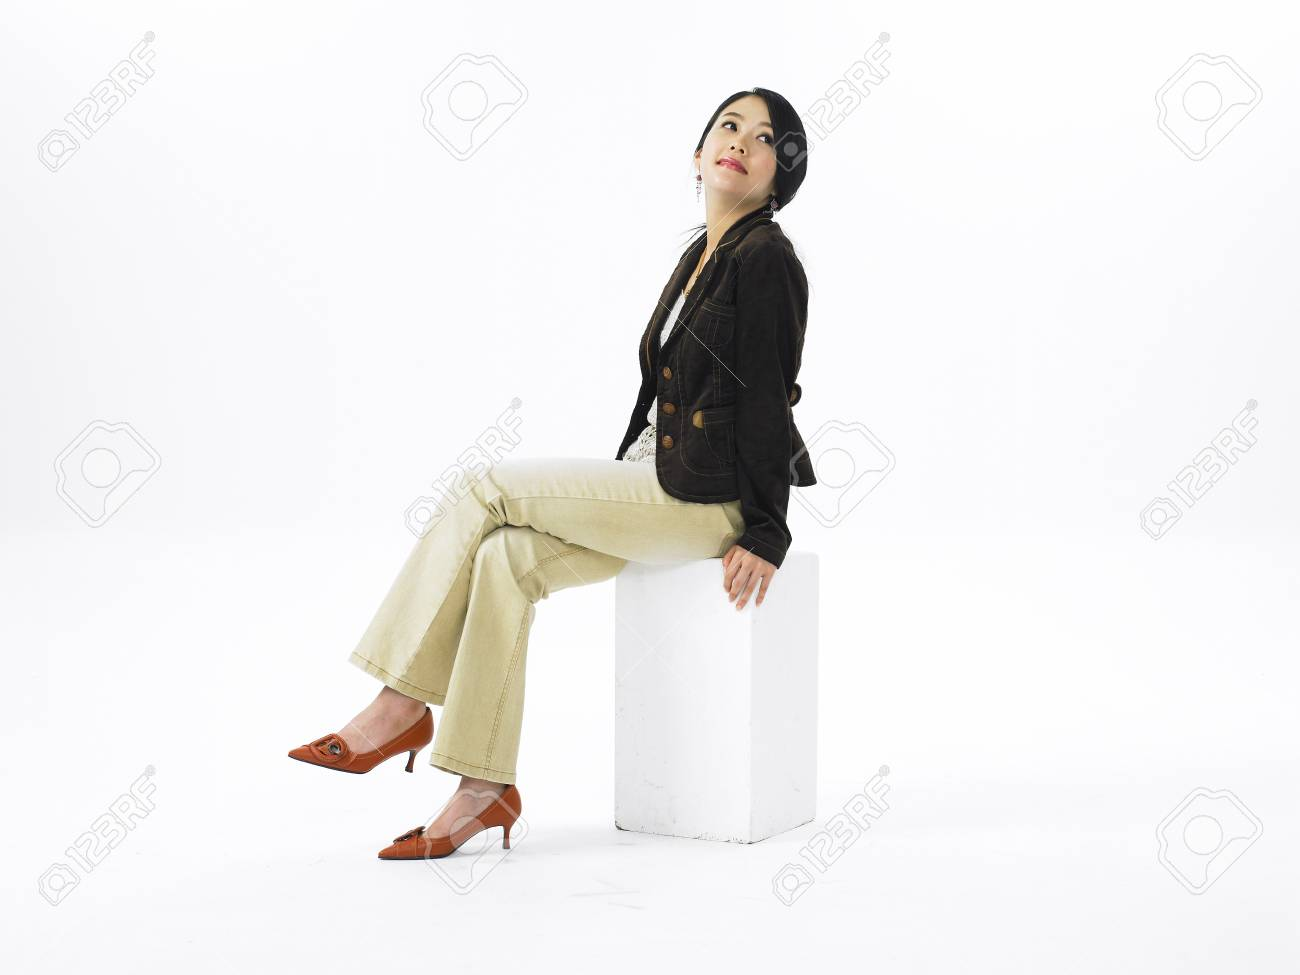 f82ac975c93 Asian woman fashion model posing in a studio as wearing business casual  pants outfit Stock Photo